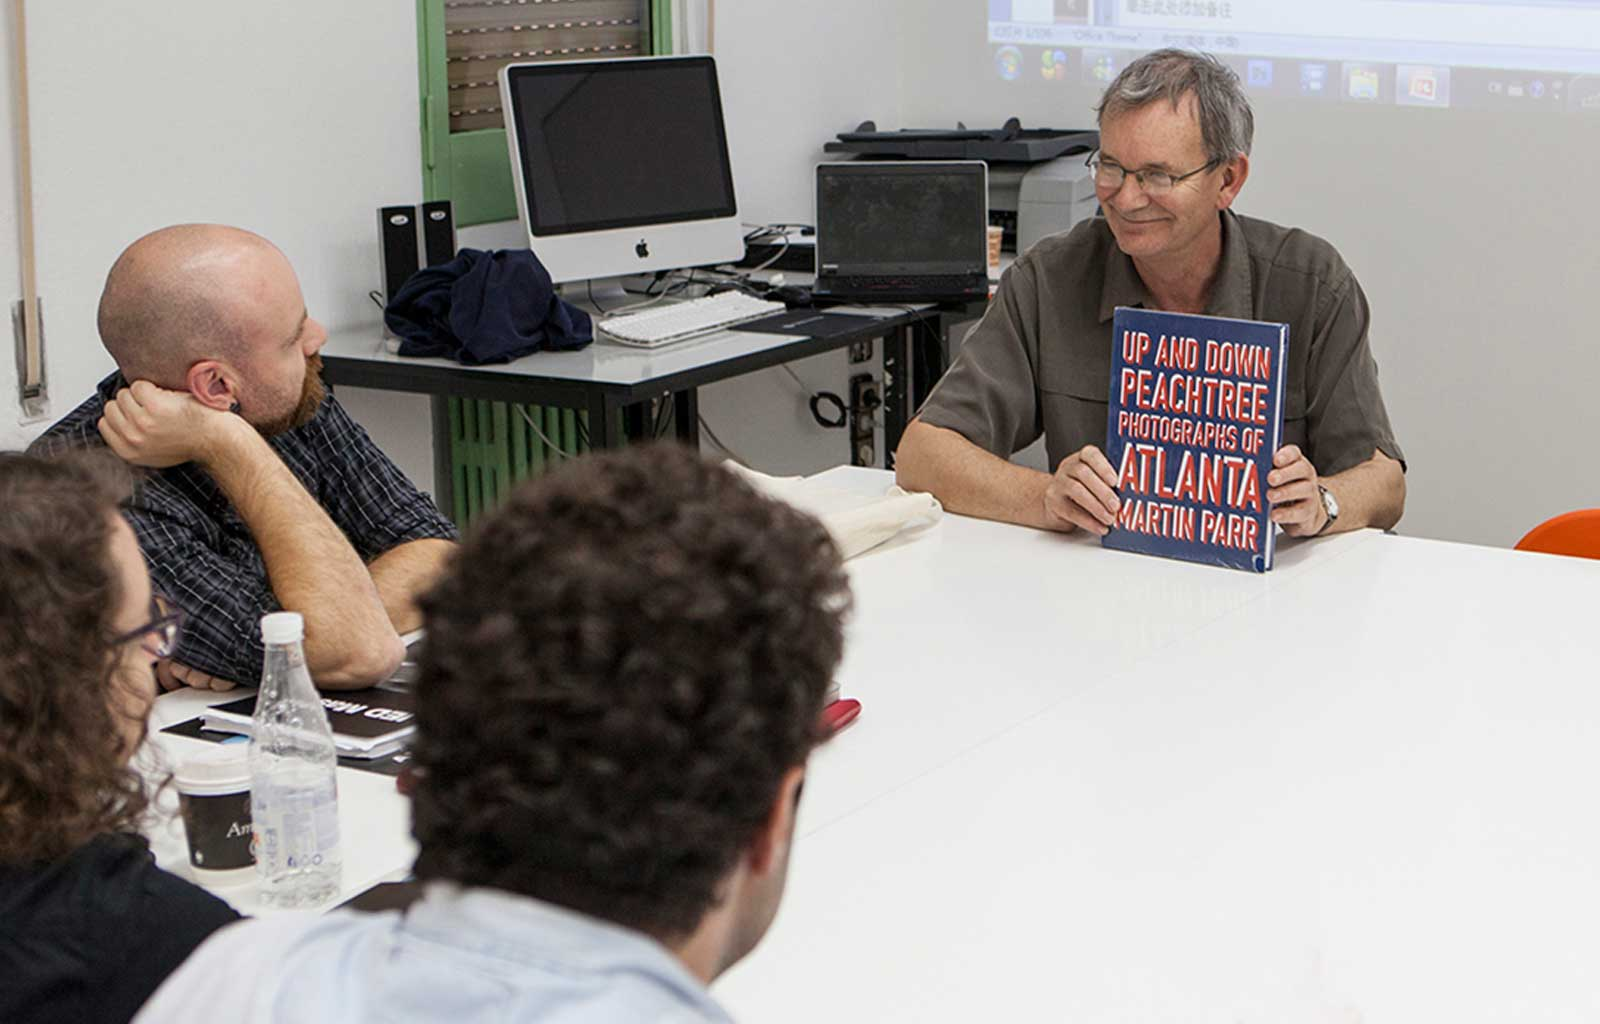 Workshop with Martin Parr